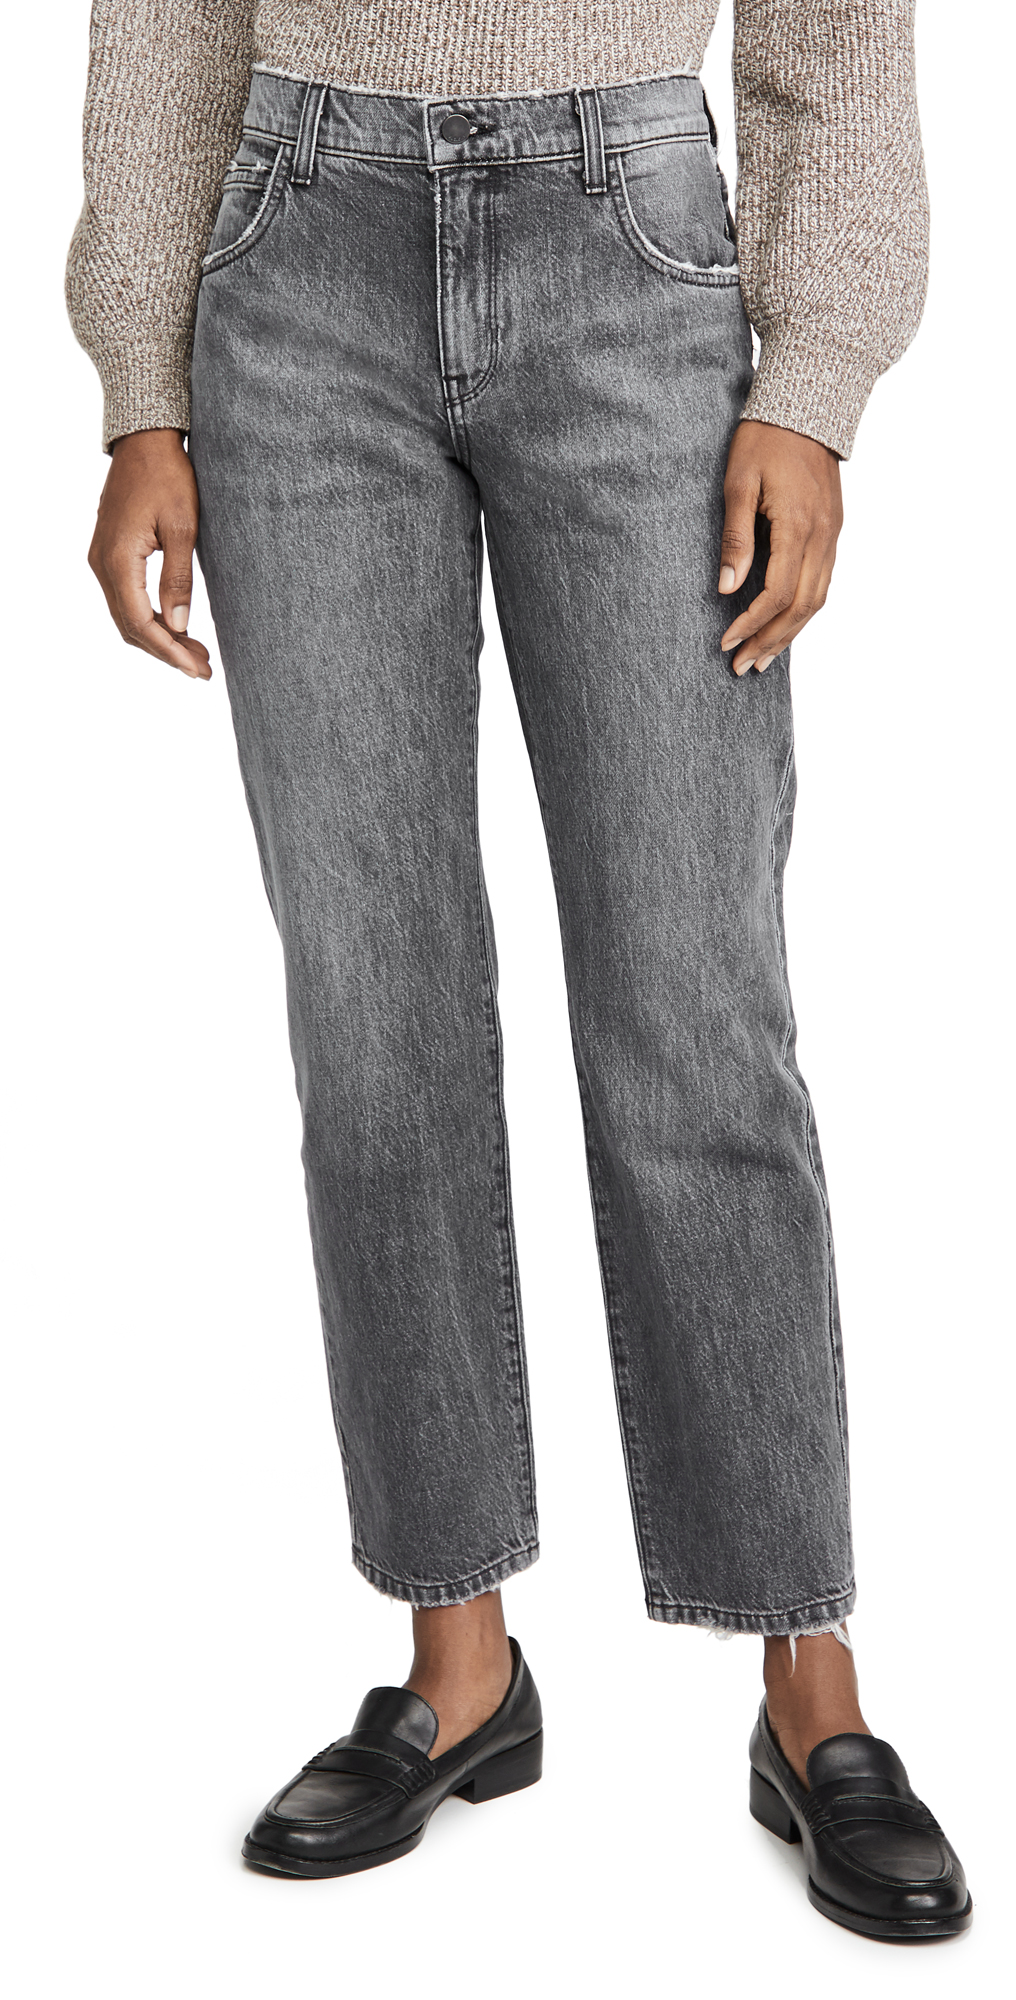 Triarchy Black High Rise Stove Pipe Jeans